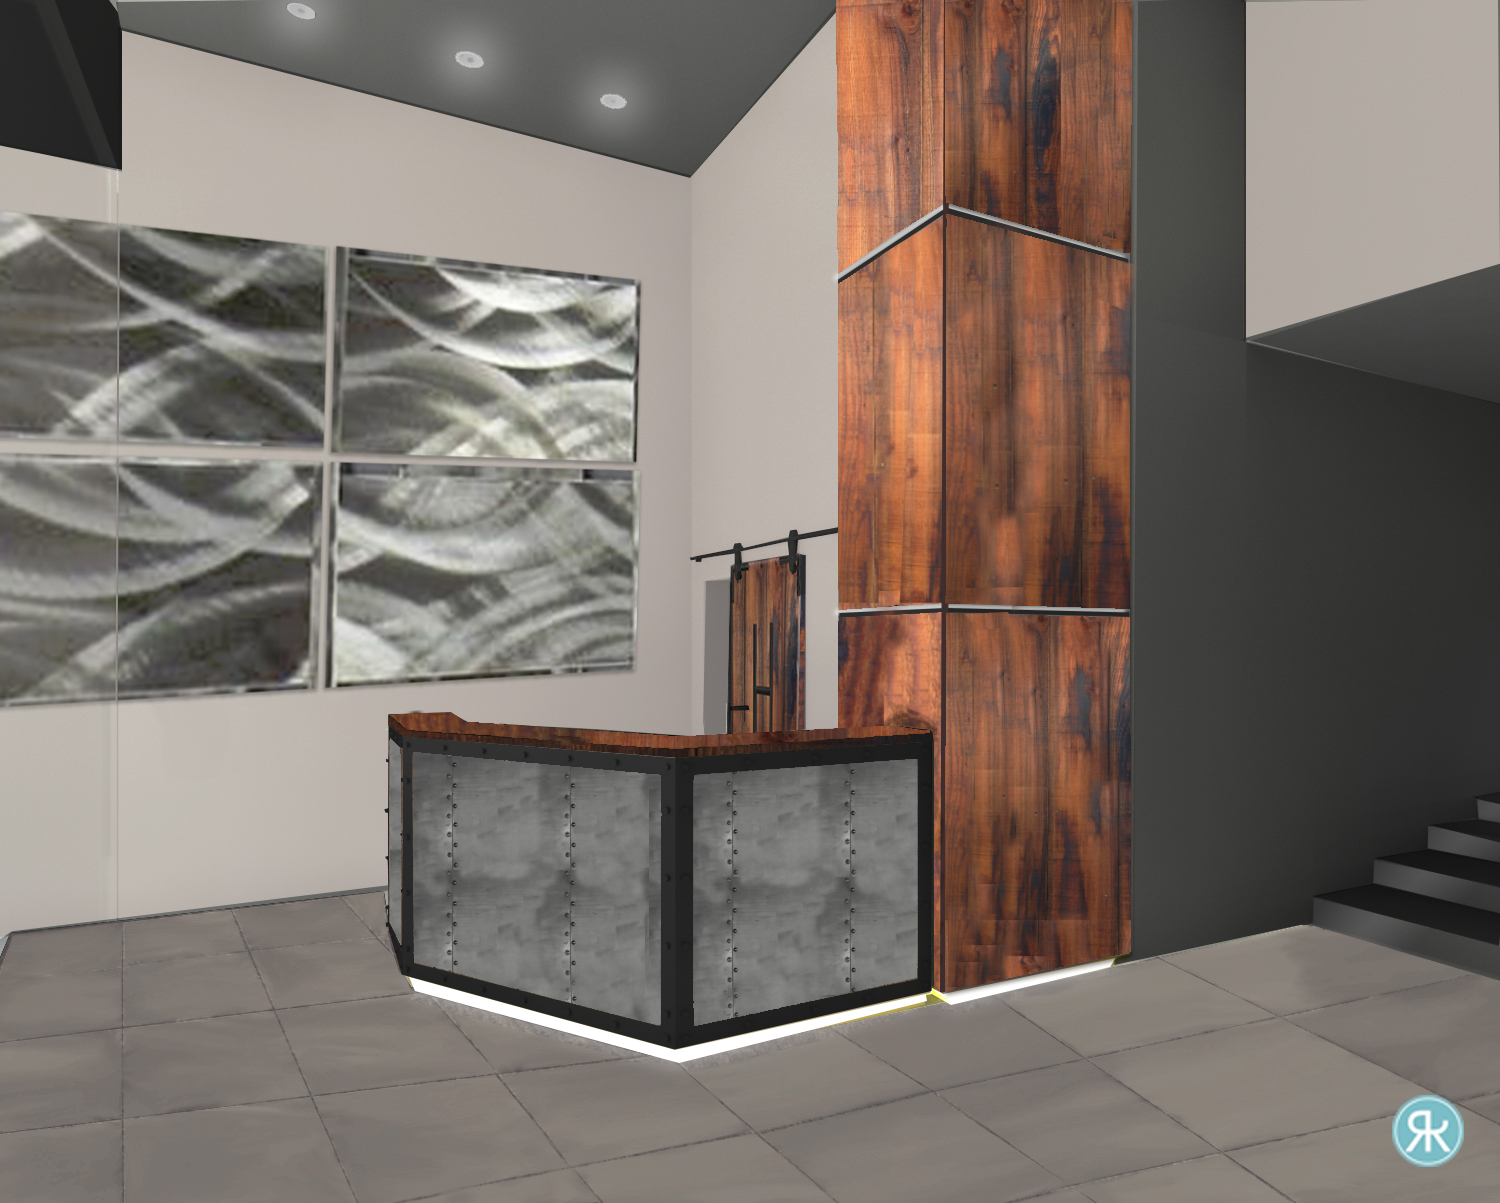 Metal Desk Wood Column Current Floor.jpg